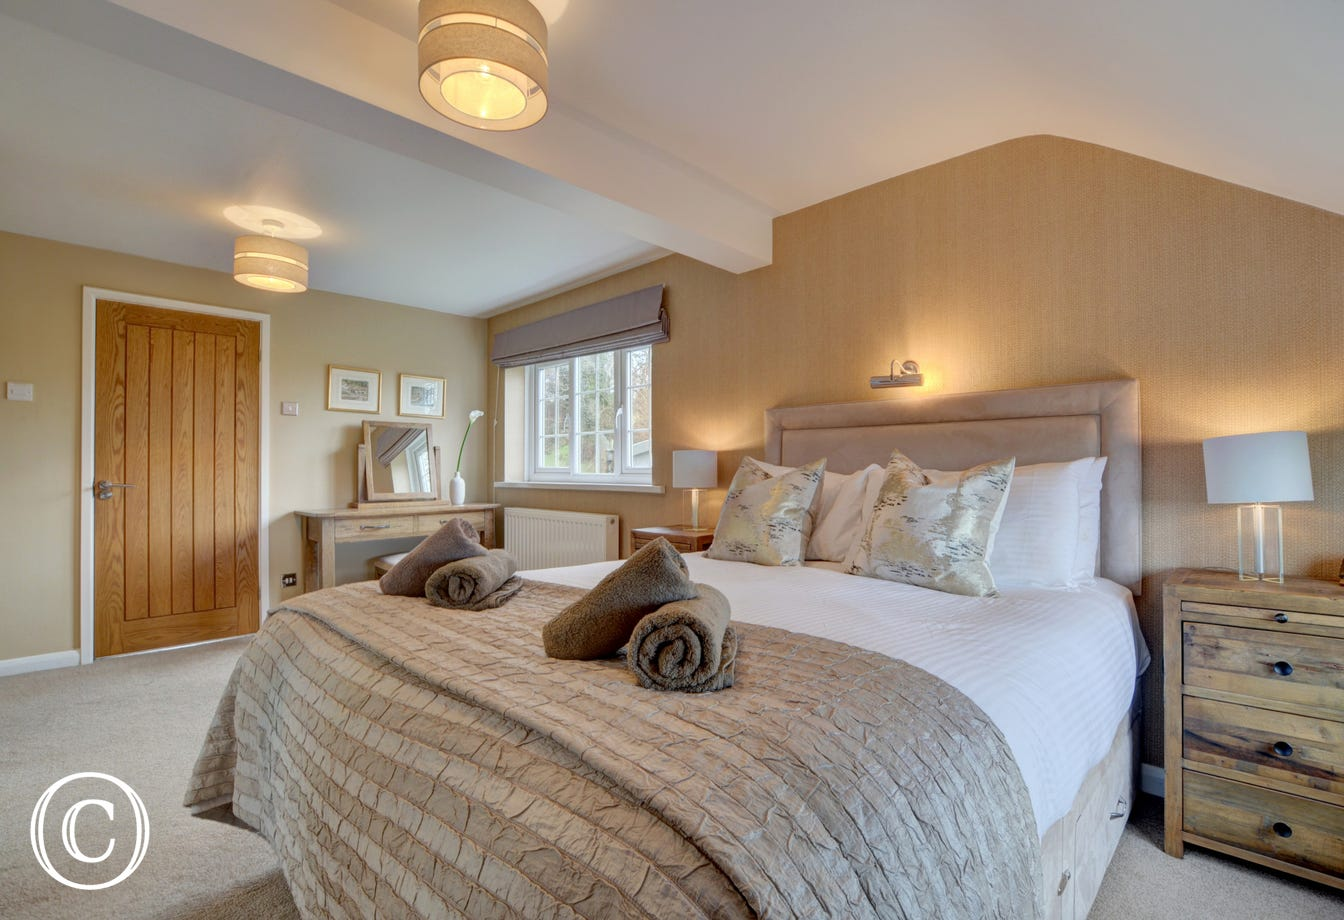 The luxurious master bedroom with ensuite bathroom and countryside views